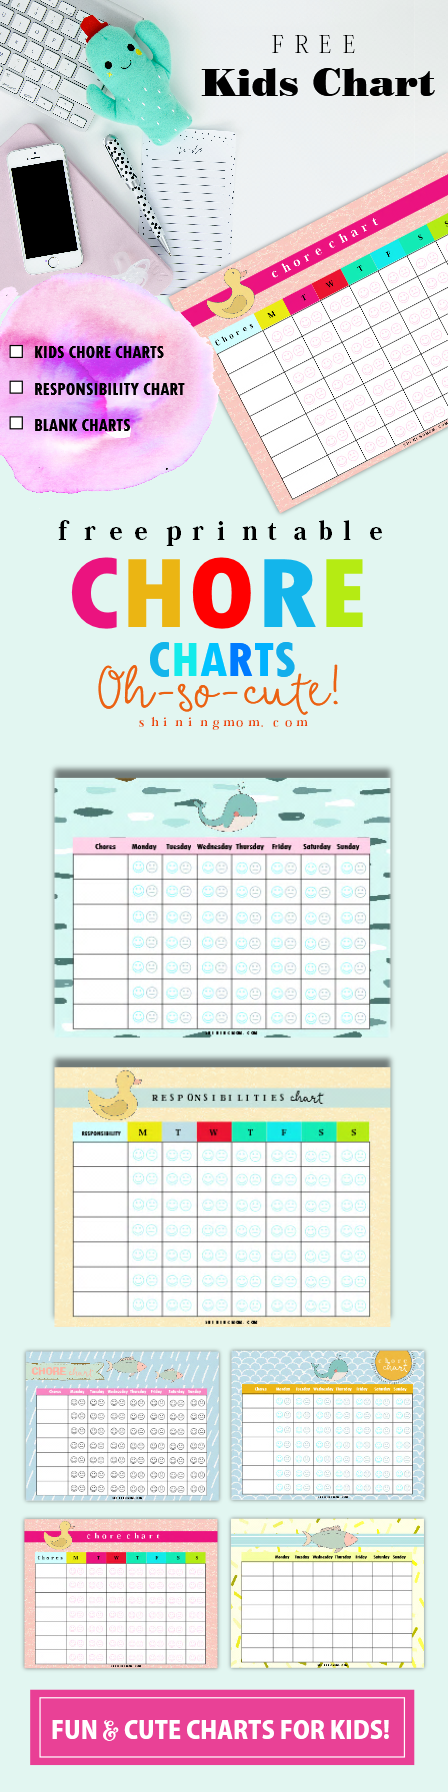 Cute free printable chore charts for kids!